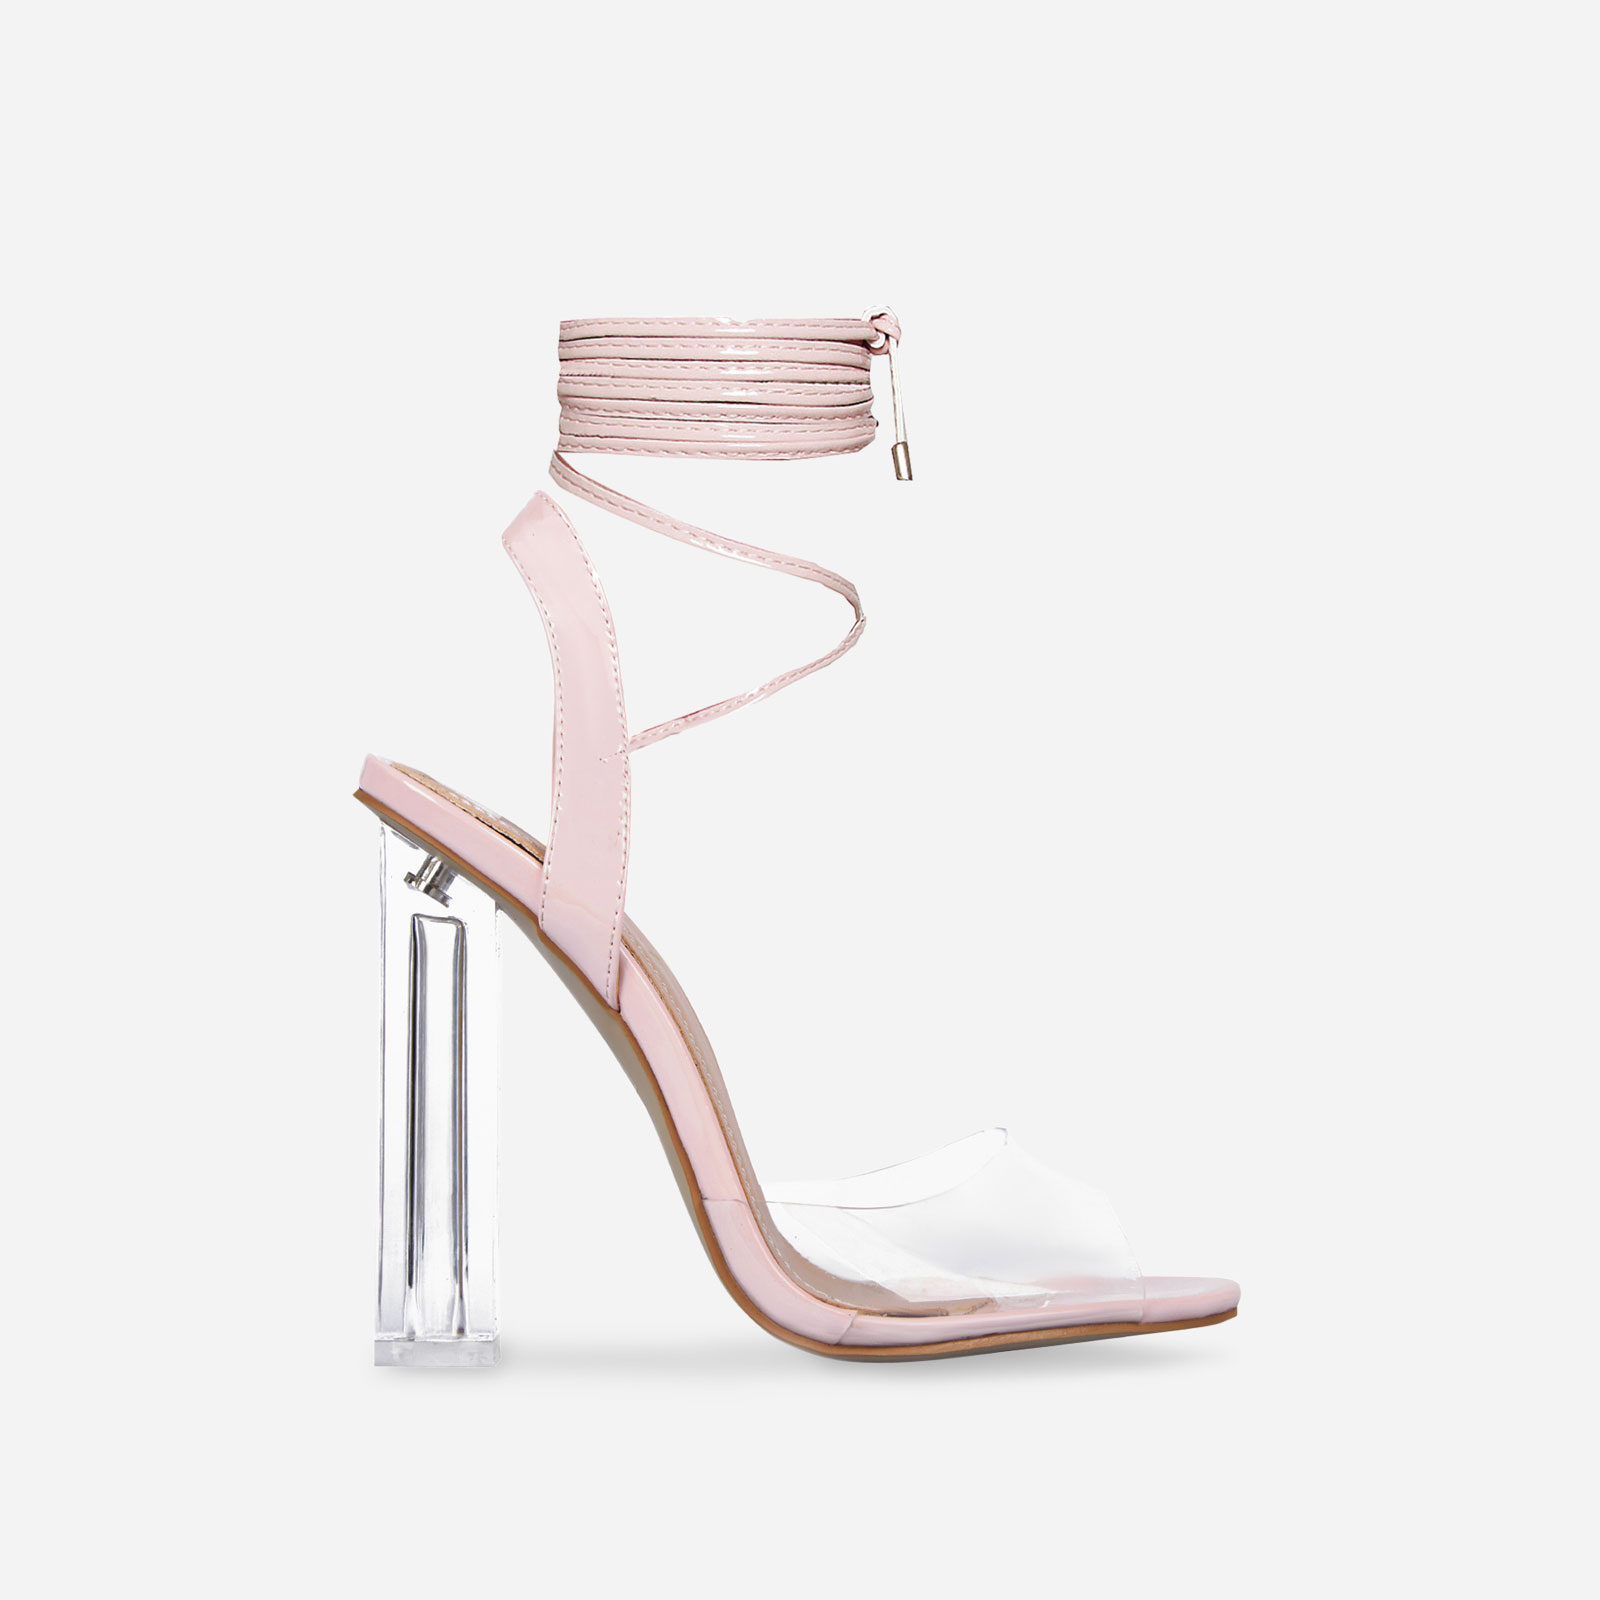 Neema Lace Up Perspex Heel In Pink Patent Image 1